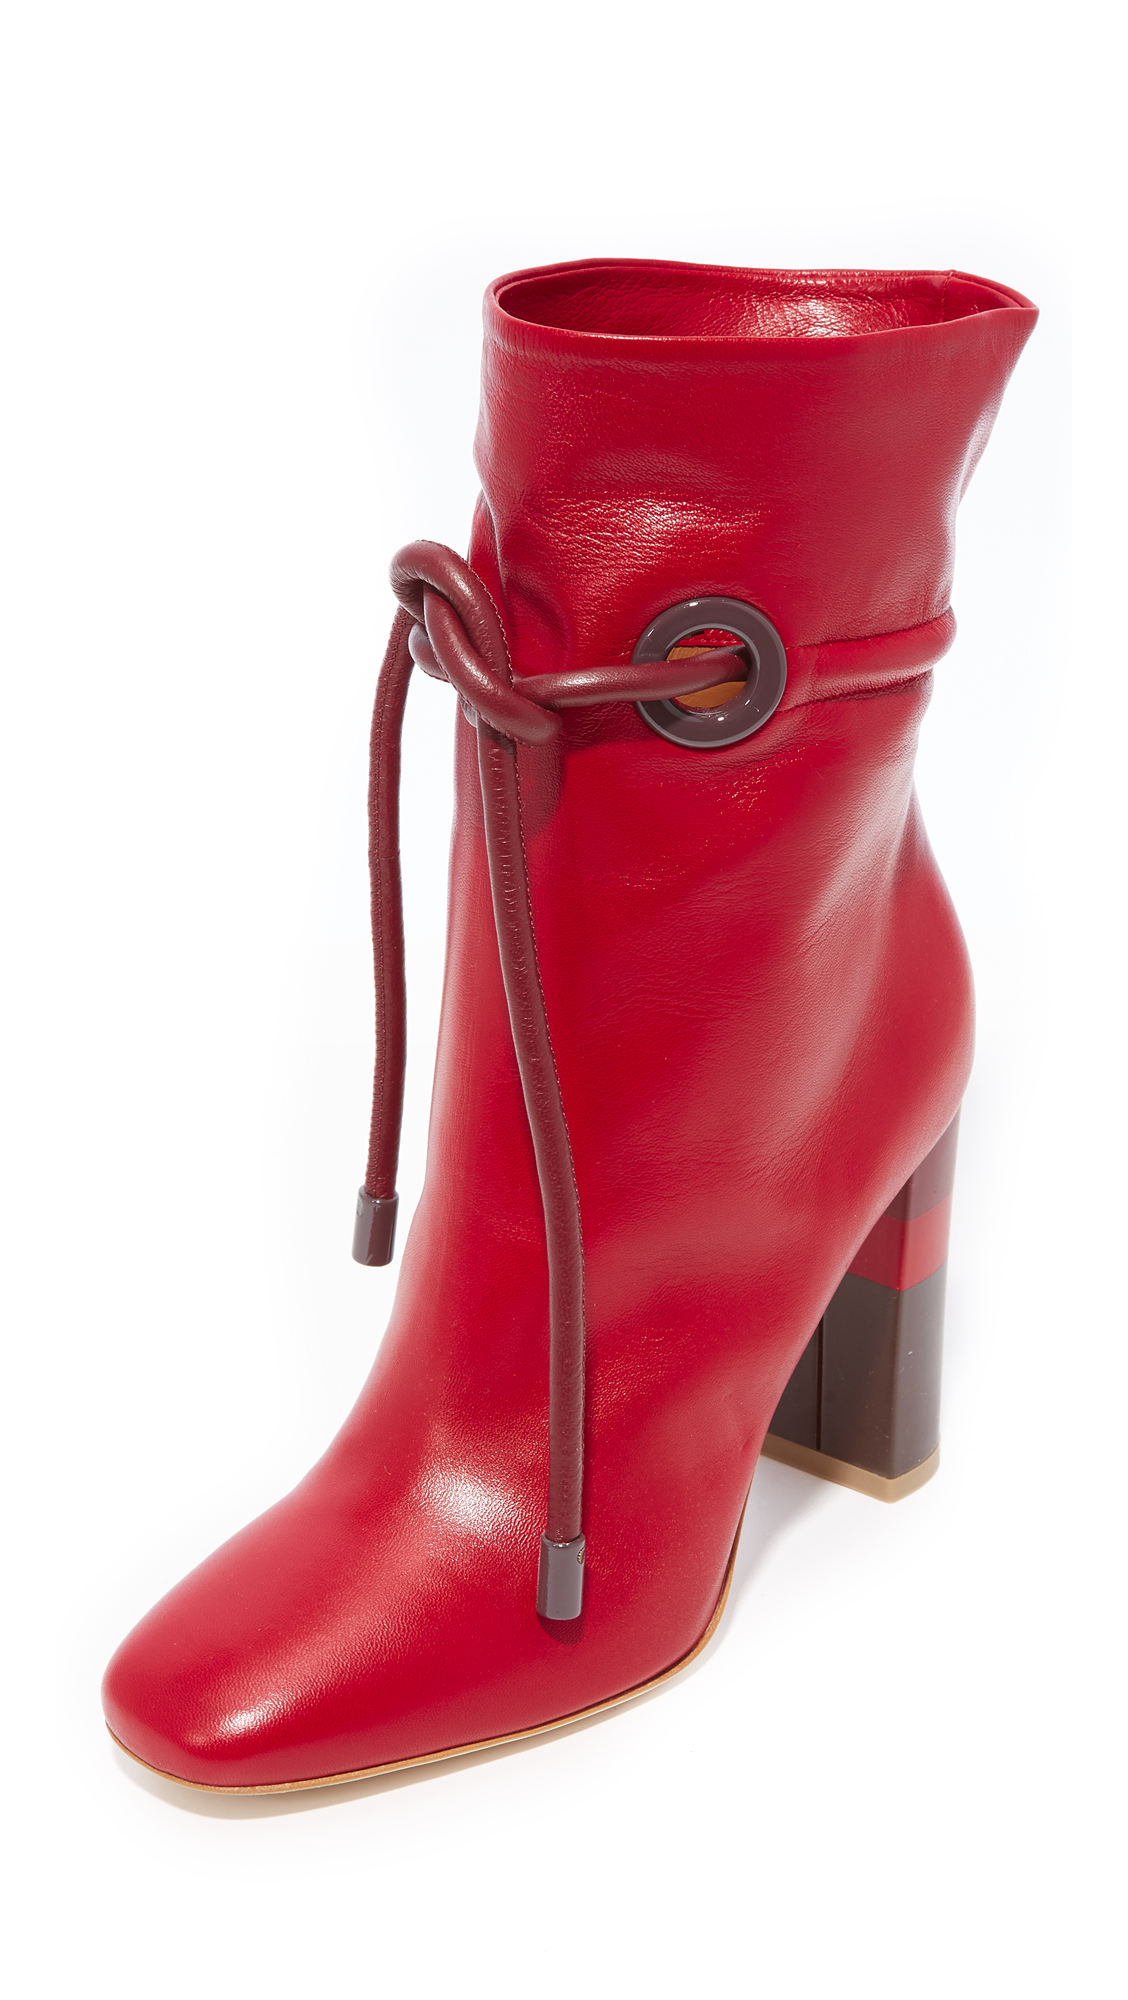 Malone Souliers Dolly Tie Booties - Red/Burgundy